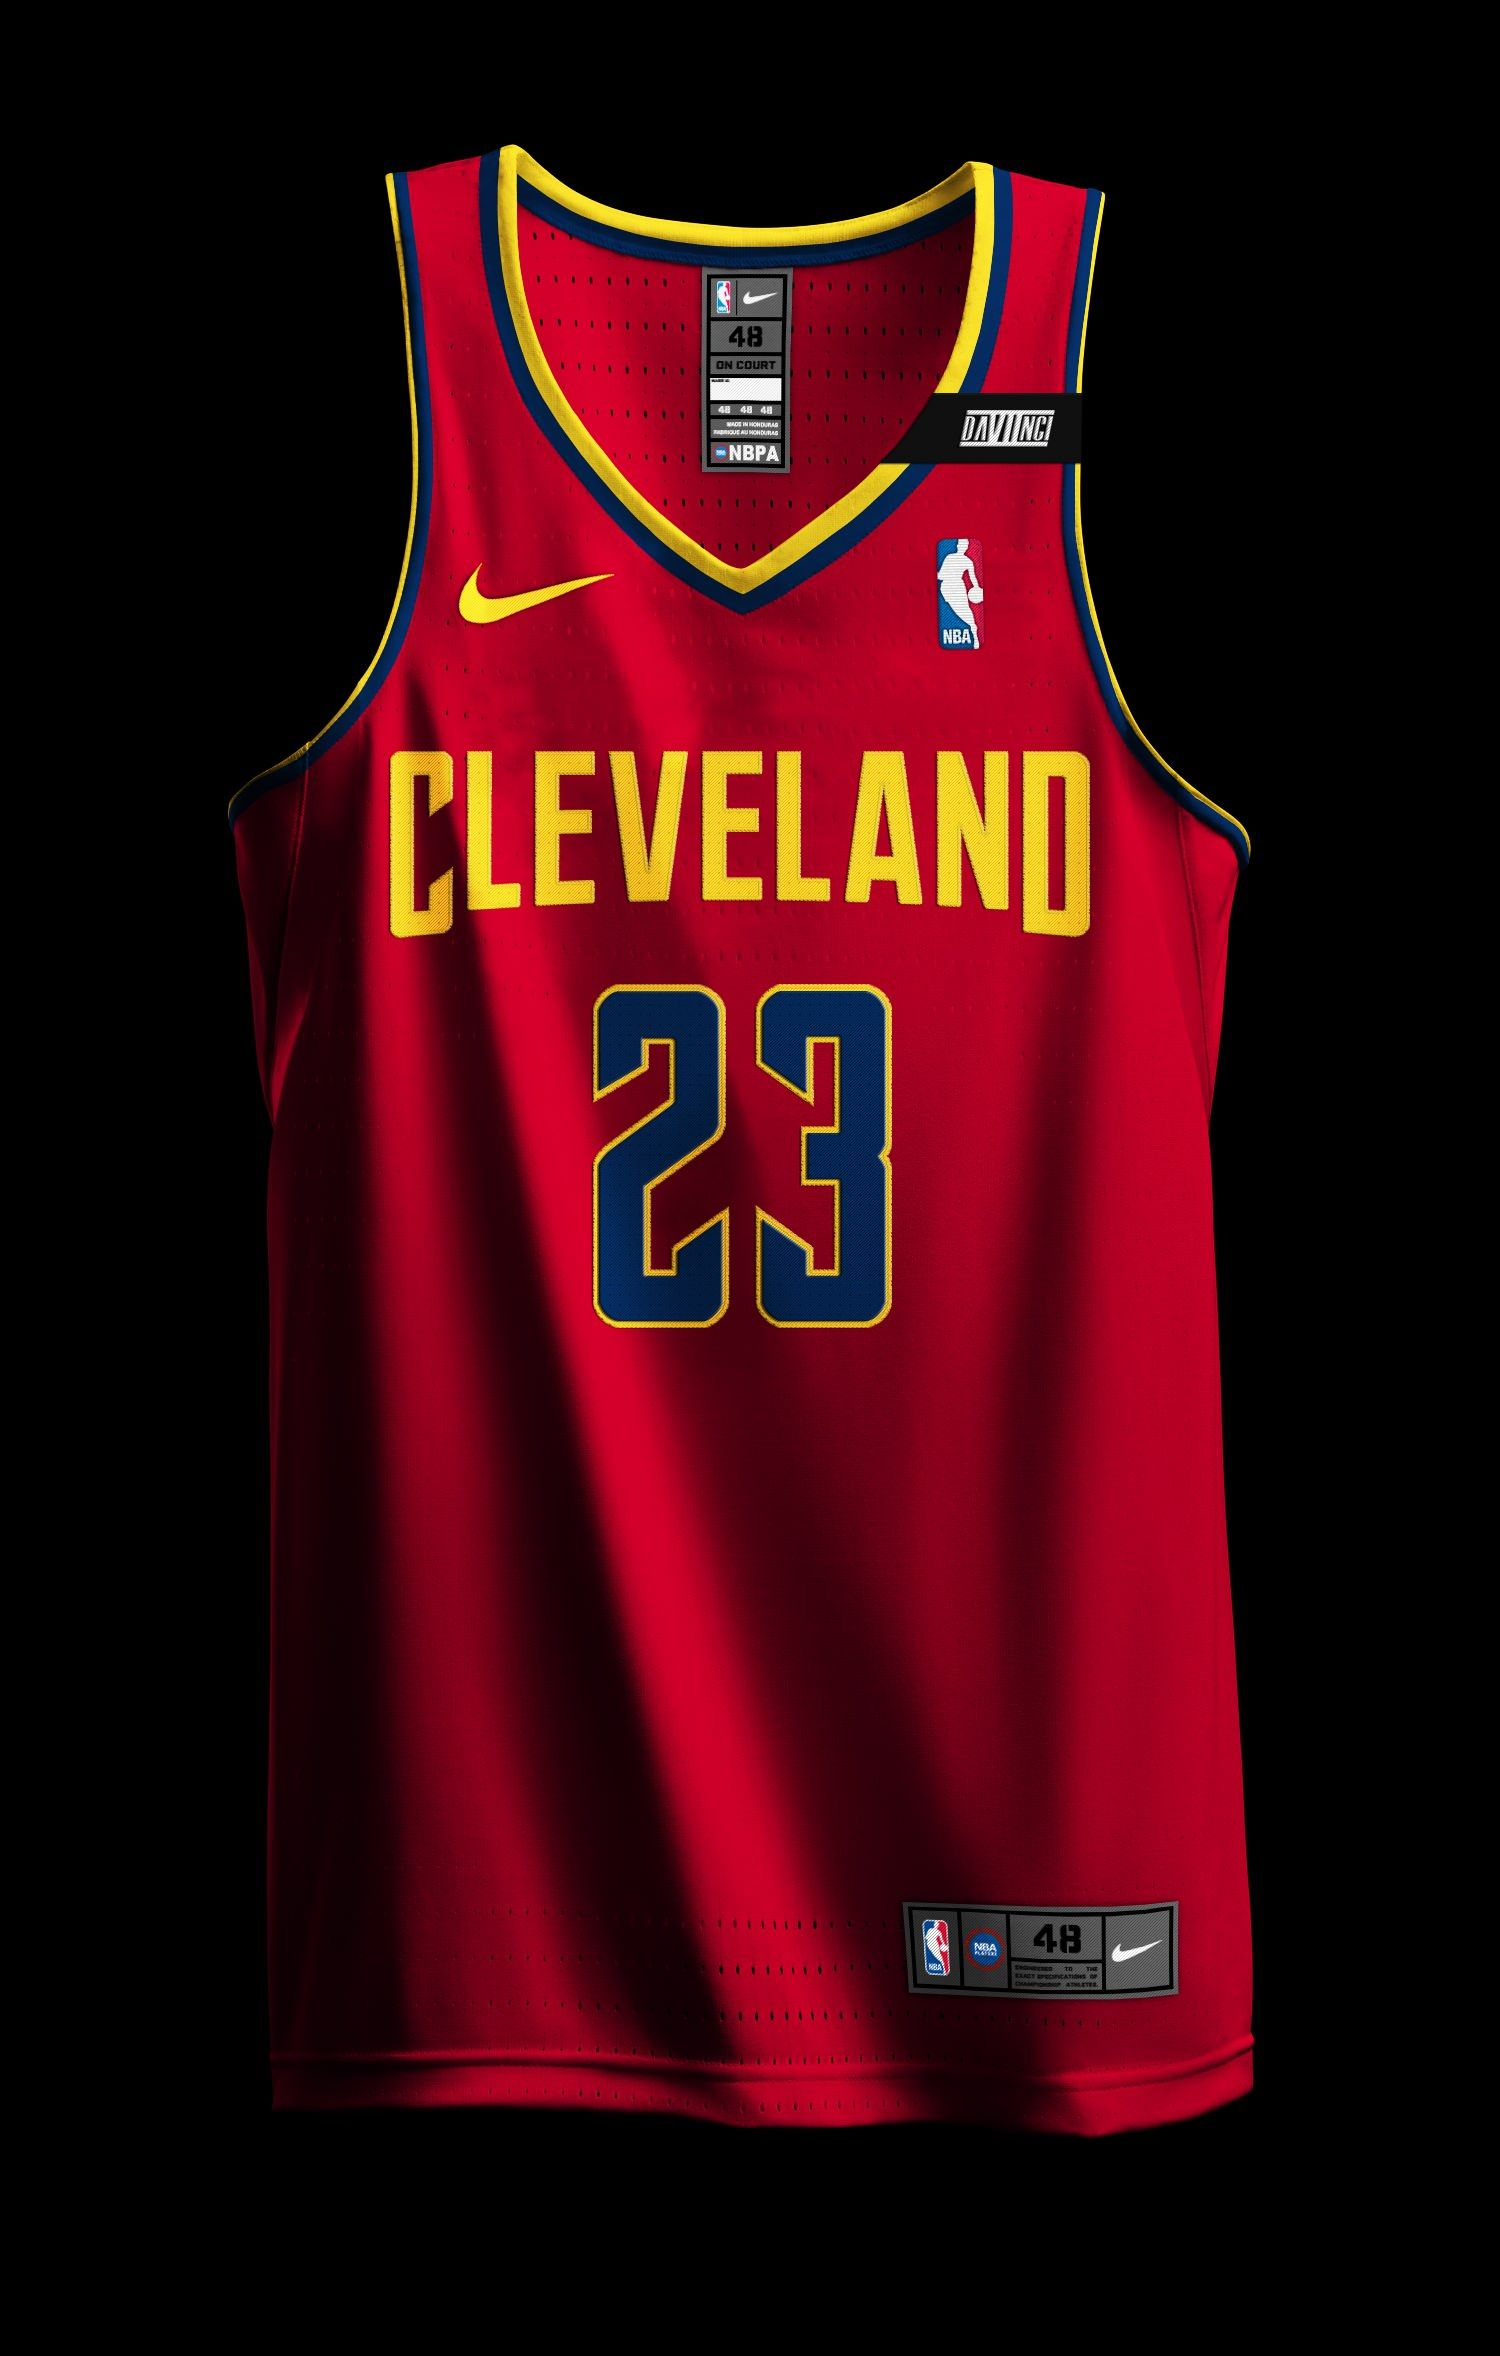 Nba X Nike Redesign Project Miami Heat City Edition Added 1 2 Page 7 Concepts Chris Creamer S Sports Logos Basketball Uniforms Design Nba Jersey Design